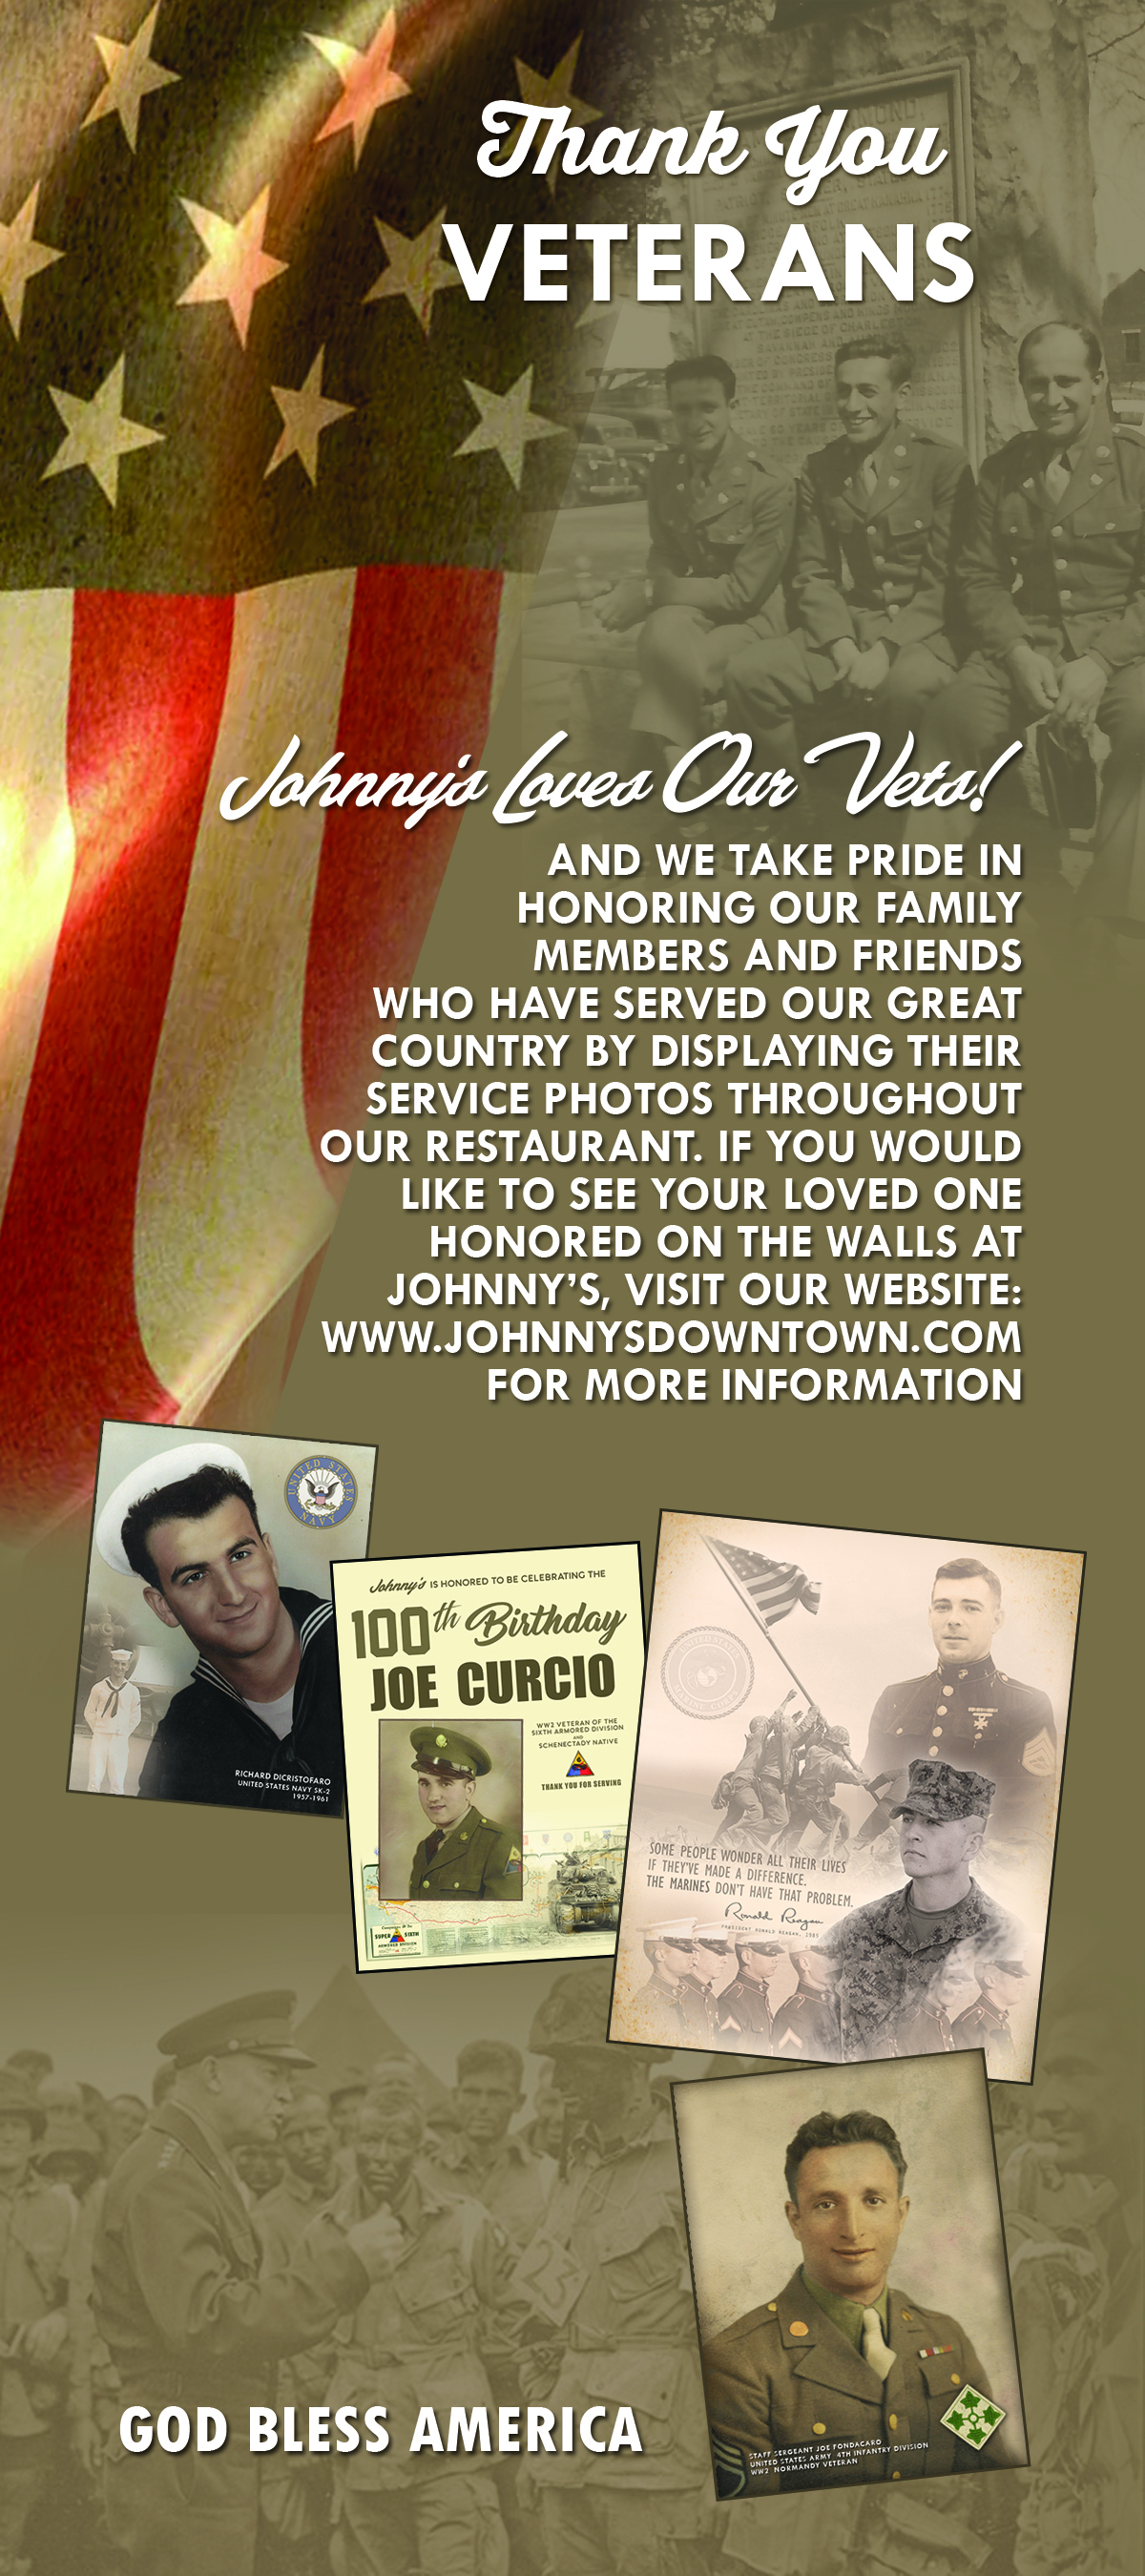 thank you veterans.jonny's loves our vets! and we take pride in honoring our family members and friends who have served our great country by displaying their service photos throughout our restaurant. if you would like to see your loved one honored on the walls at jonnys, visit our website, www.johnnysdowntown.com for more information. god bless america.